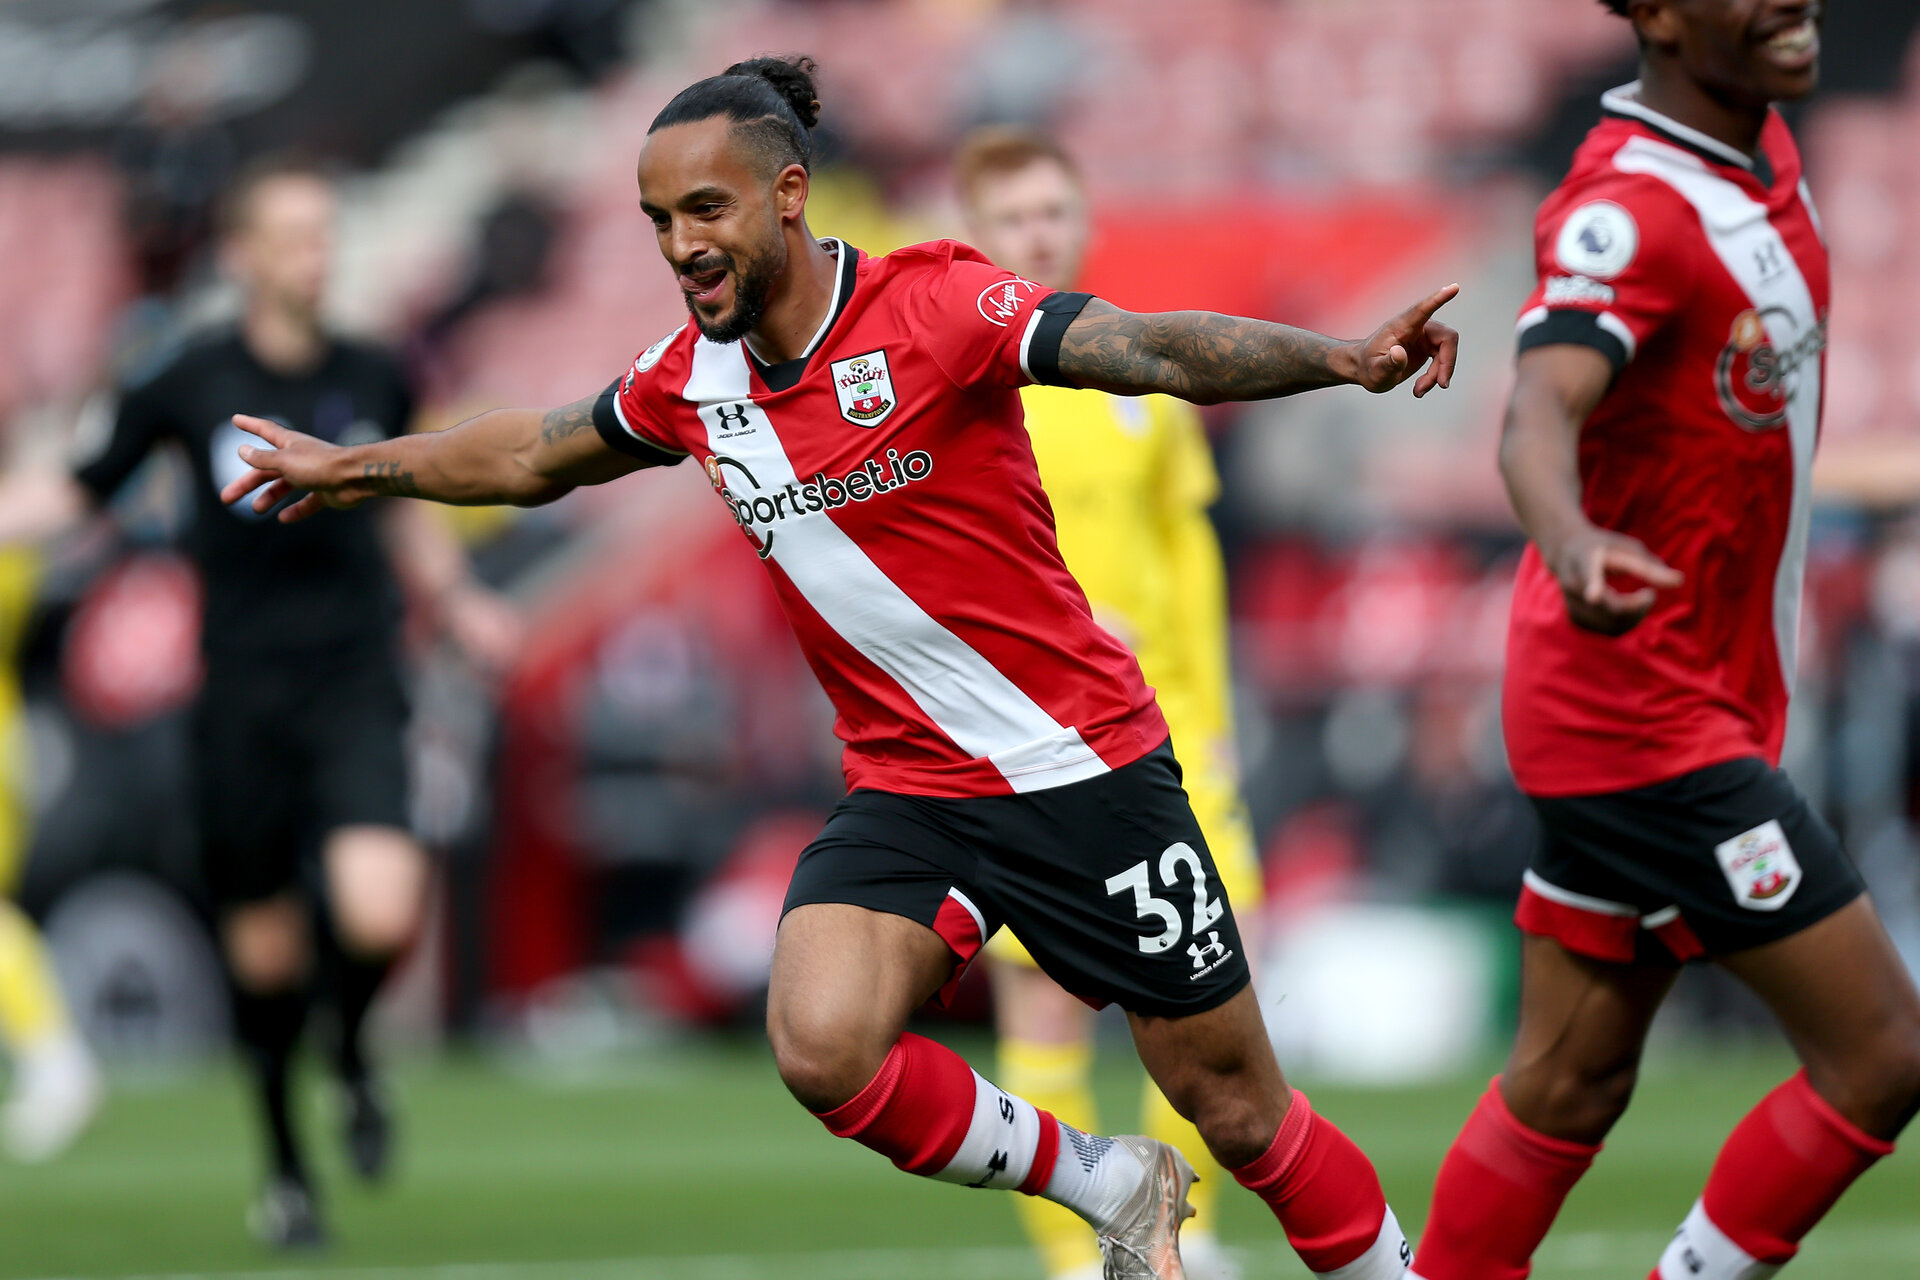 SOUTHAMPTON, ENGLAND - MAY 15: Theo Walcott of Southampton goal celebration  during the Premier League match between Southampton and Fulham at St Mary's Stadium on May 15, 2021 in Southampton, England. Sporting stadiums around the UK remain under strict restrictions due to the Coronavirus Pandemic as Government social distancing laws prohibit fans inside venues resulting in games being played behind closed doors.  (Photo by Matt Watson/Southampton FC via Getty Images)